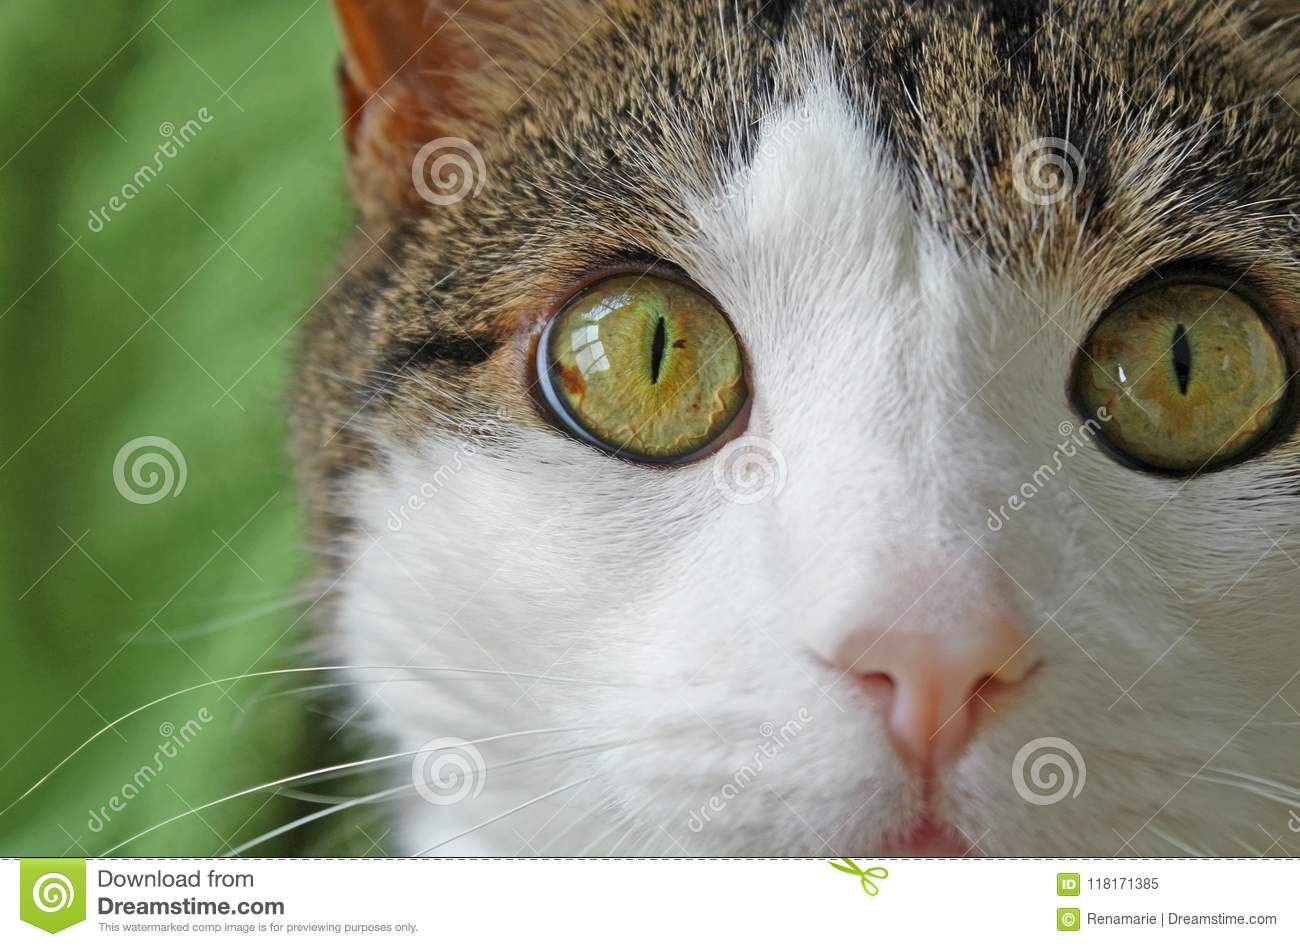 Domestic cat with big bright hazel colored eyes, soft pink nose and white face and whiskers looking into camera